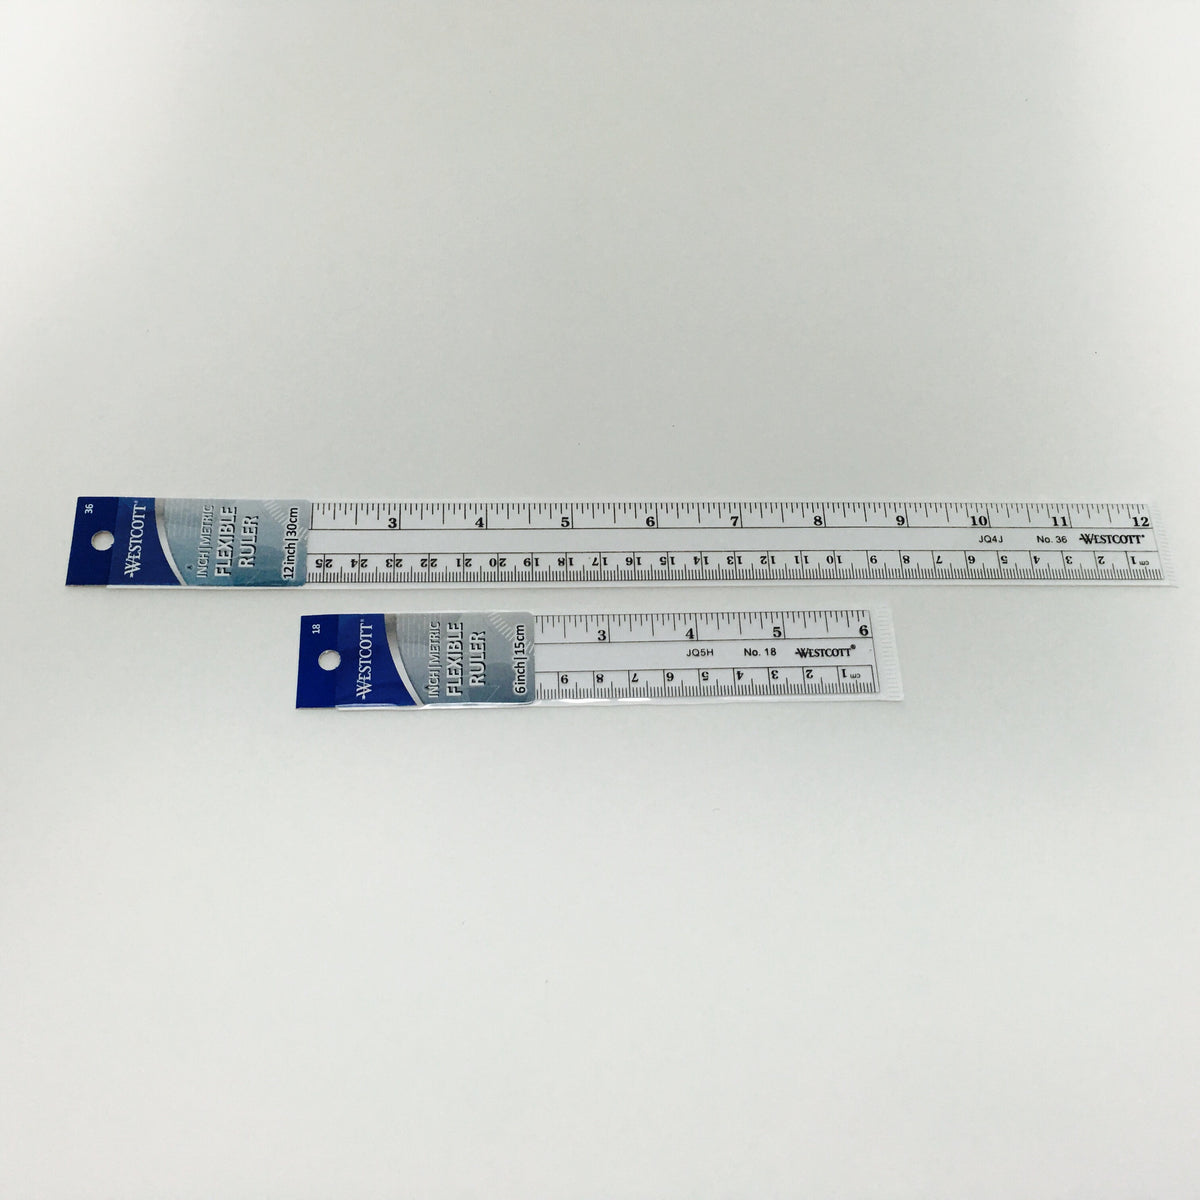 Westcott Flexible Ruler